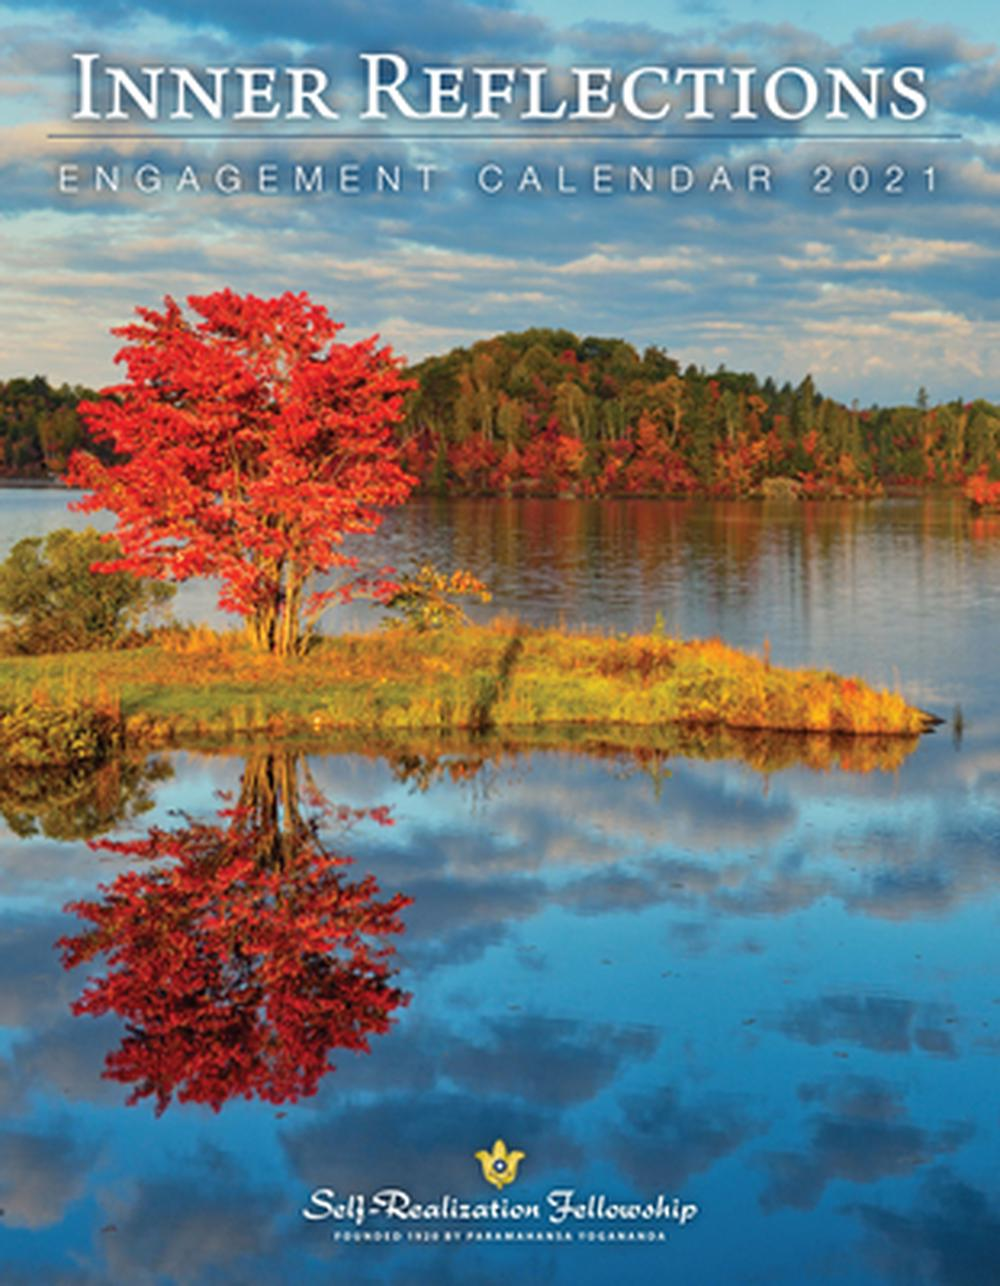 Inner Reflections Engagement Calendar 2021